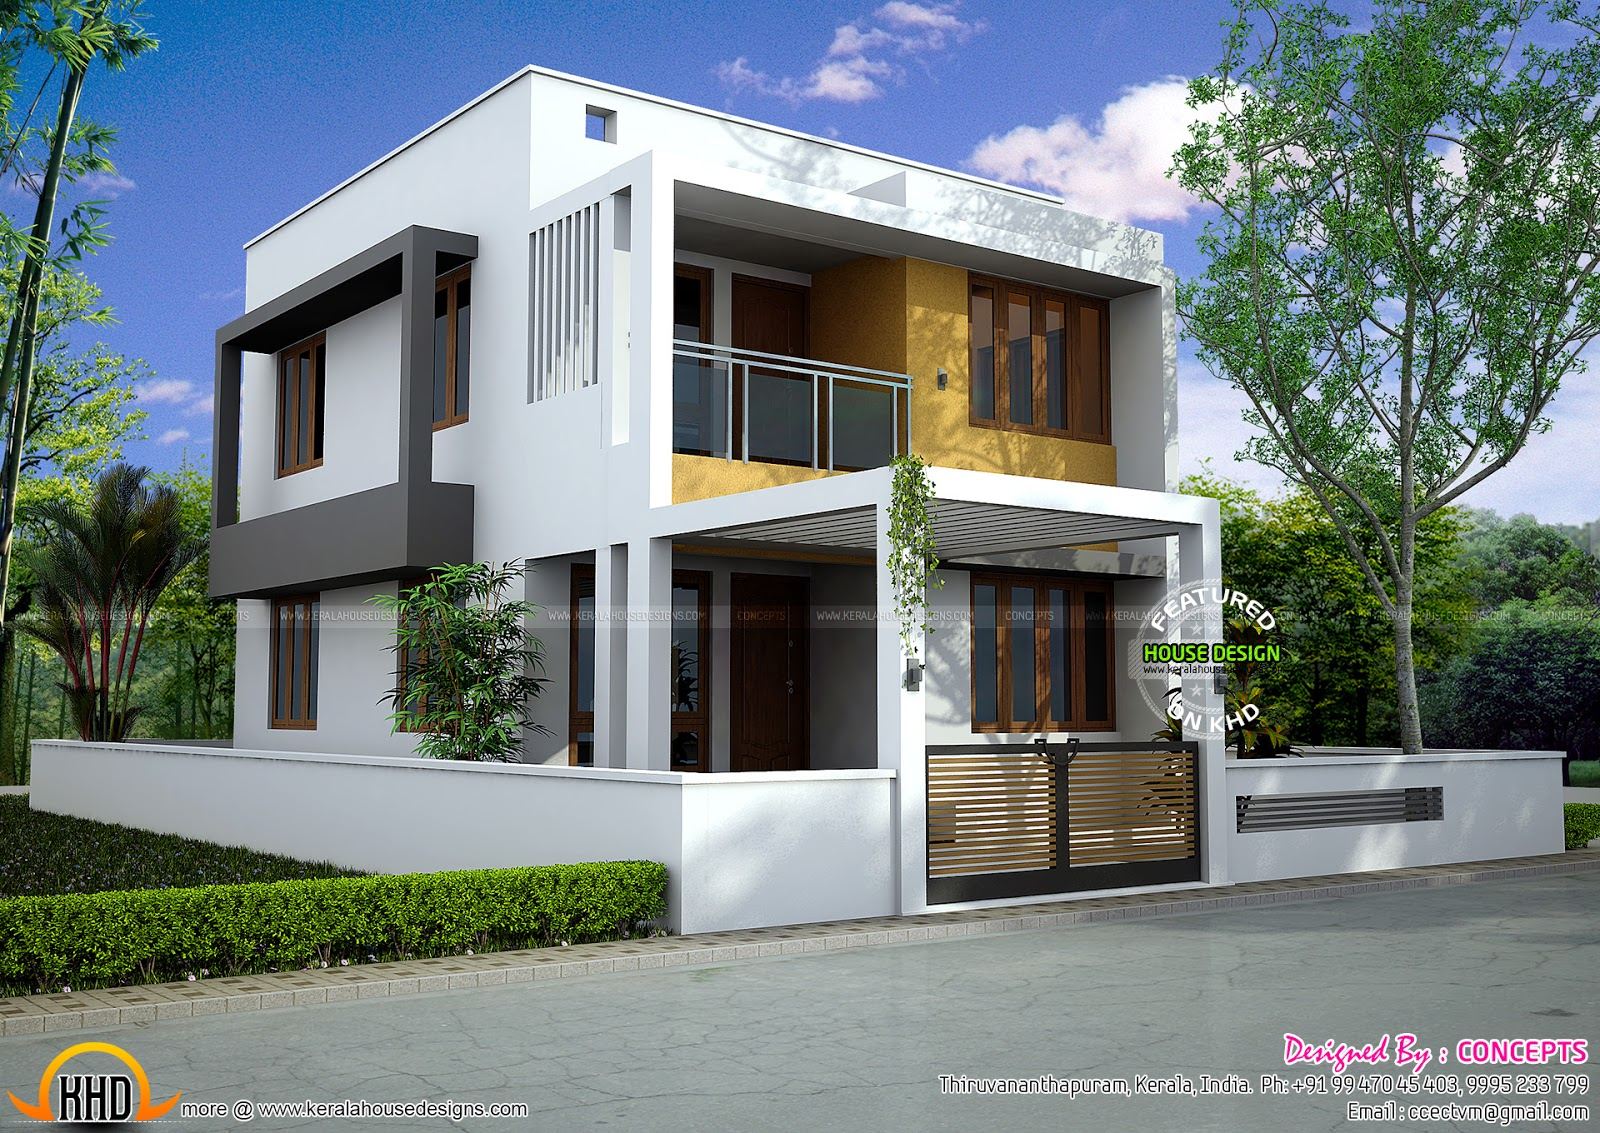 Floor plan of modern 3 bedroom house - Kerala home design ...